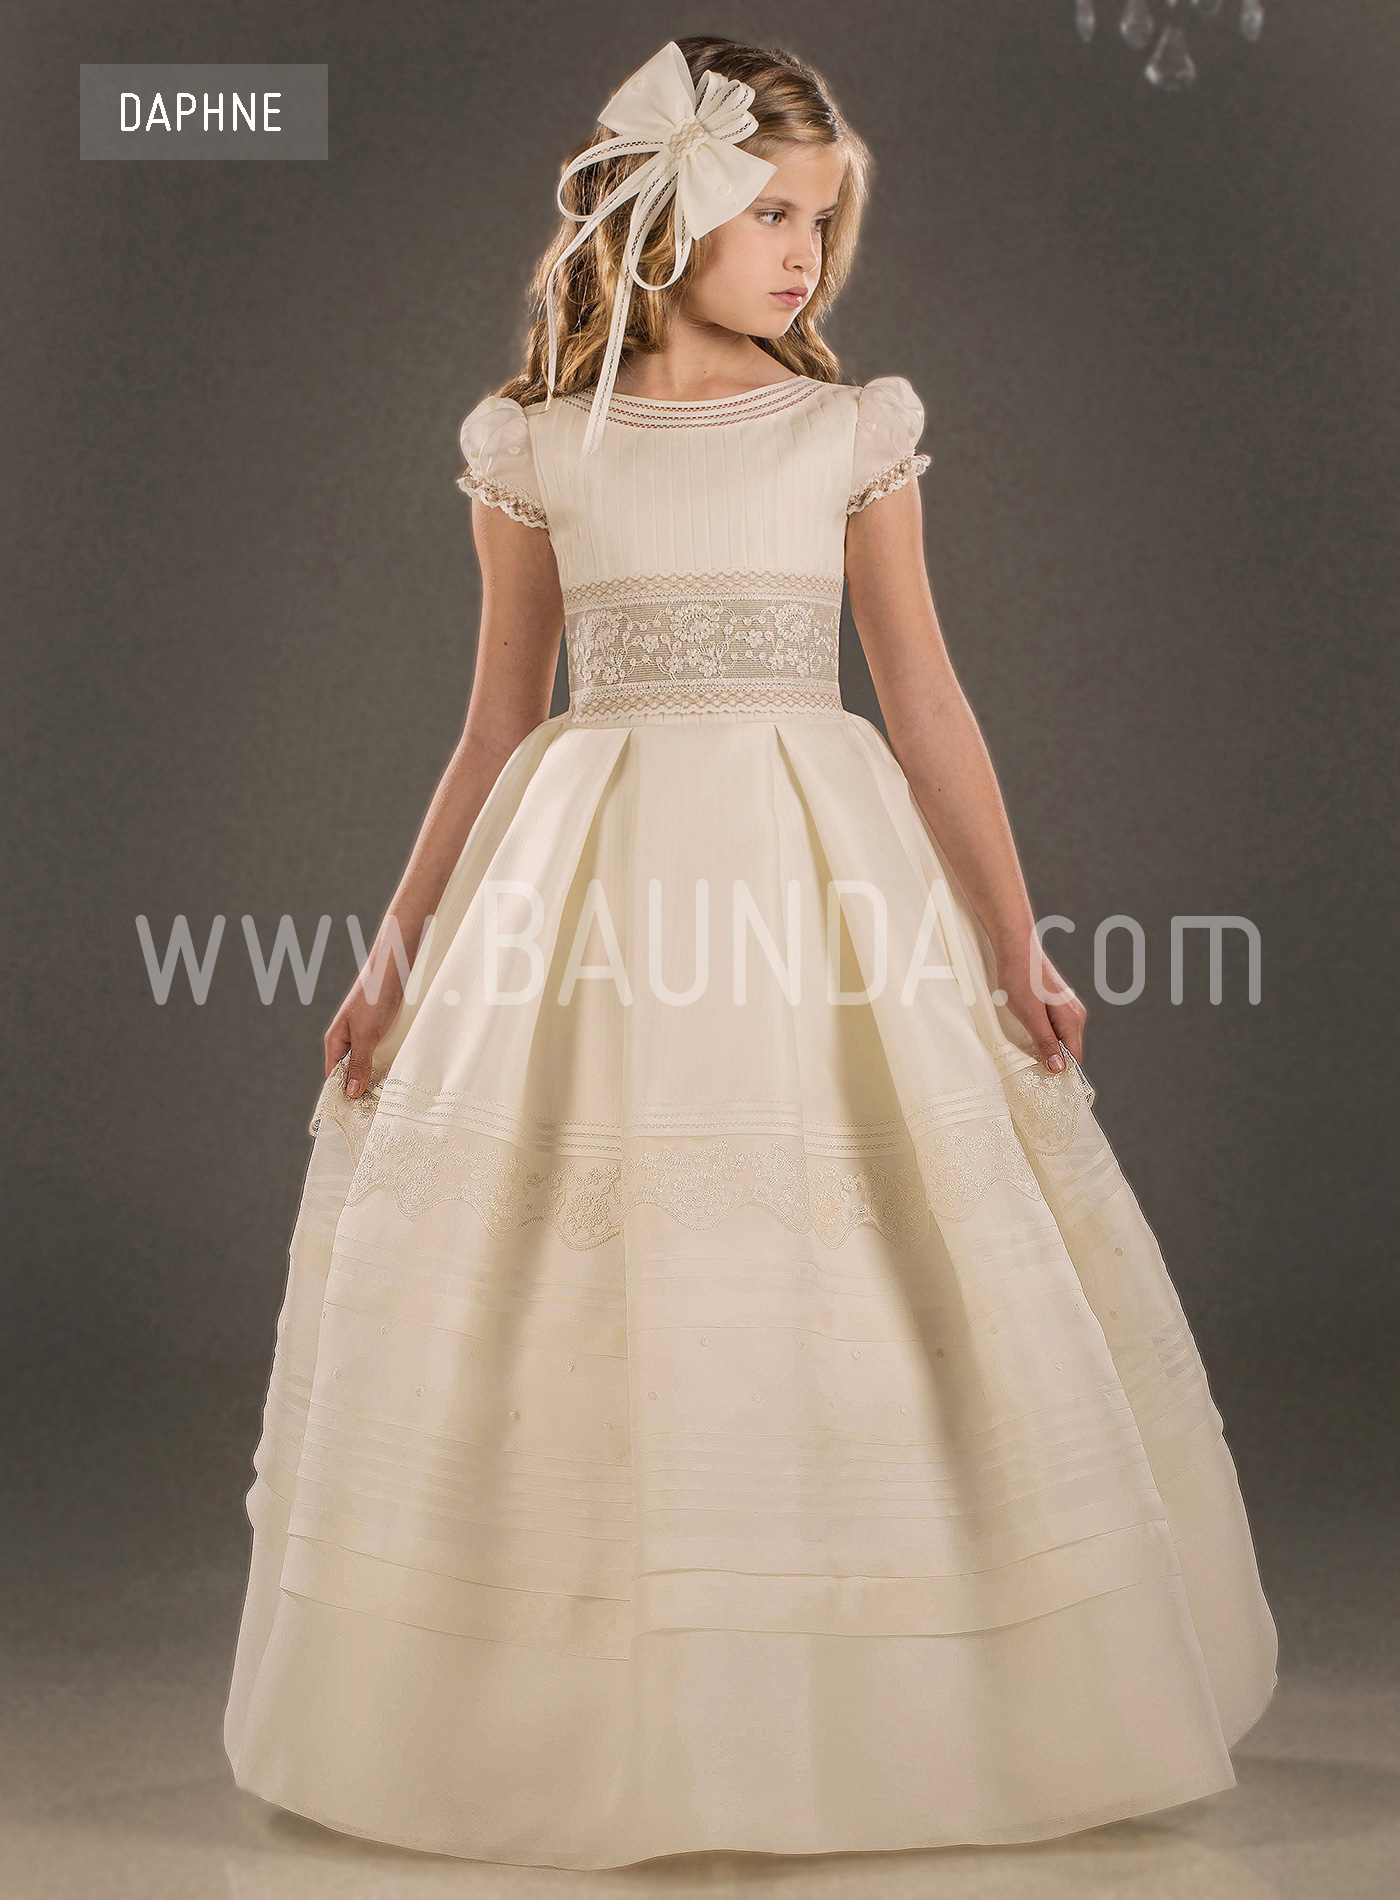 206192a2cb2 Baunda Spanish communion dress Valeria 2018 DAPHNE Madrid and online ...